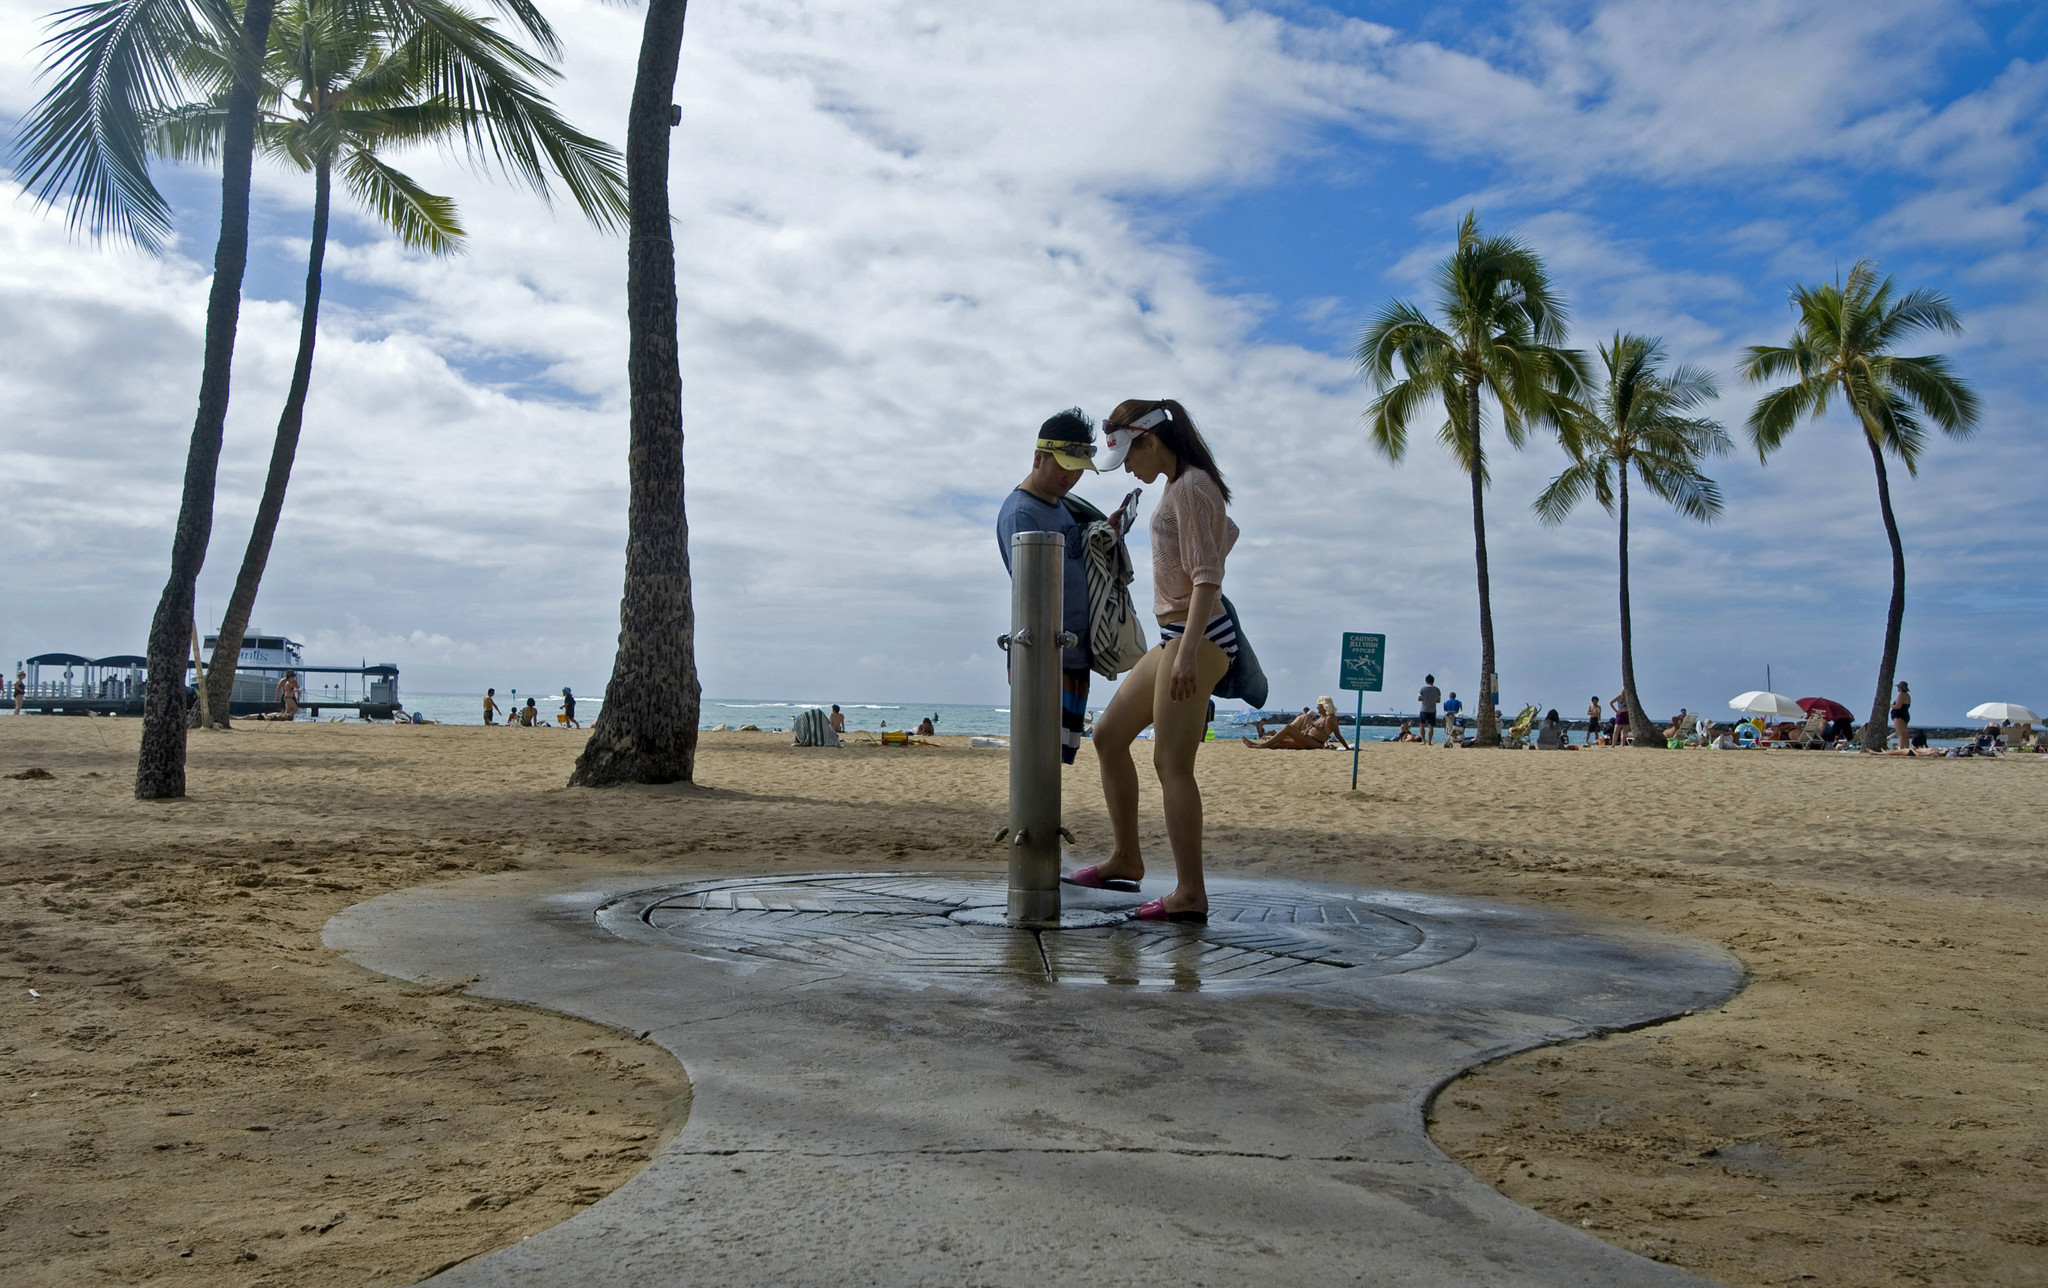 Pictures: Best Beach 2013 -- Duke Kahanamoku Beach in Hawaii - Best Beach 2013 -- Hawaii